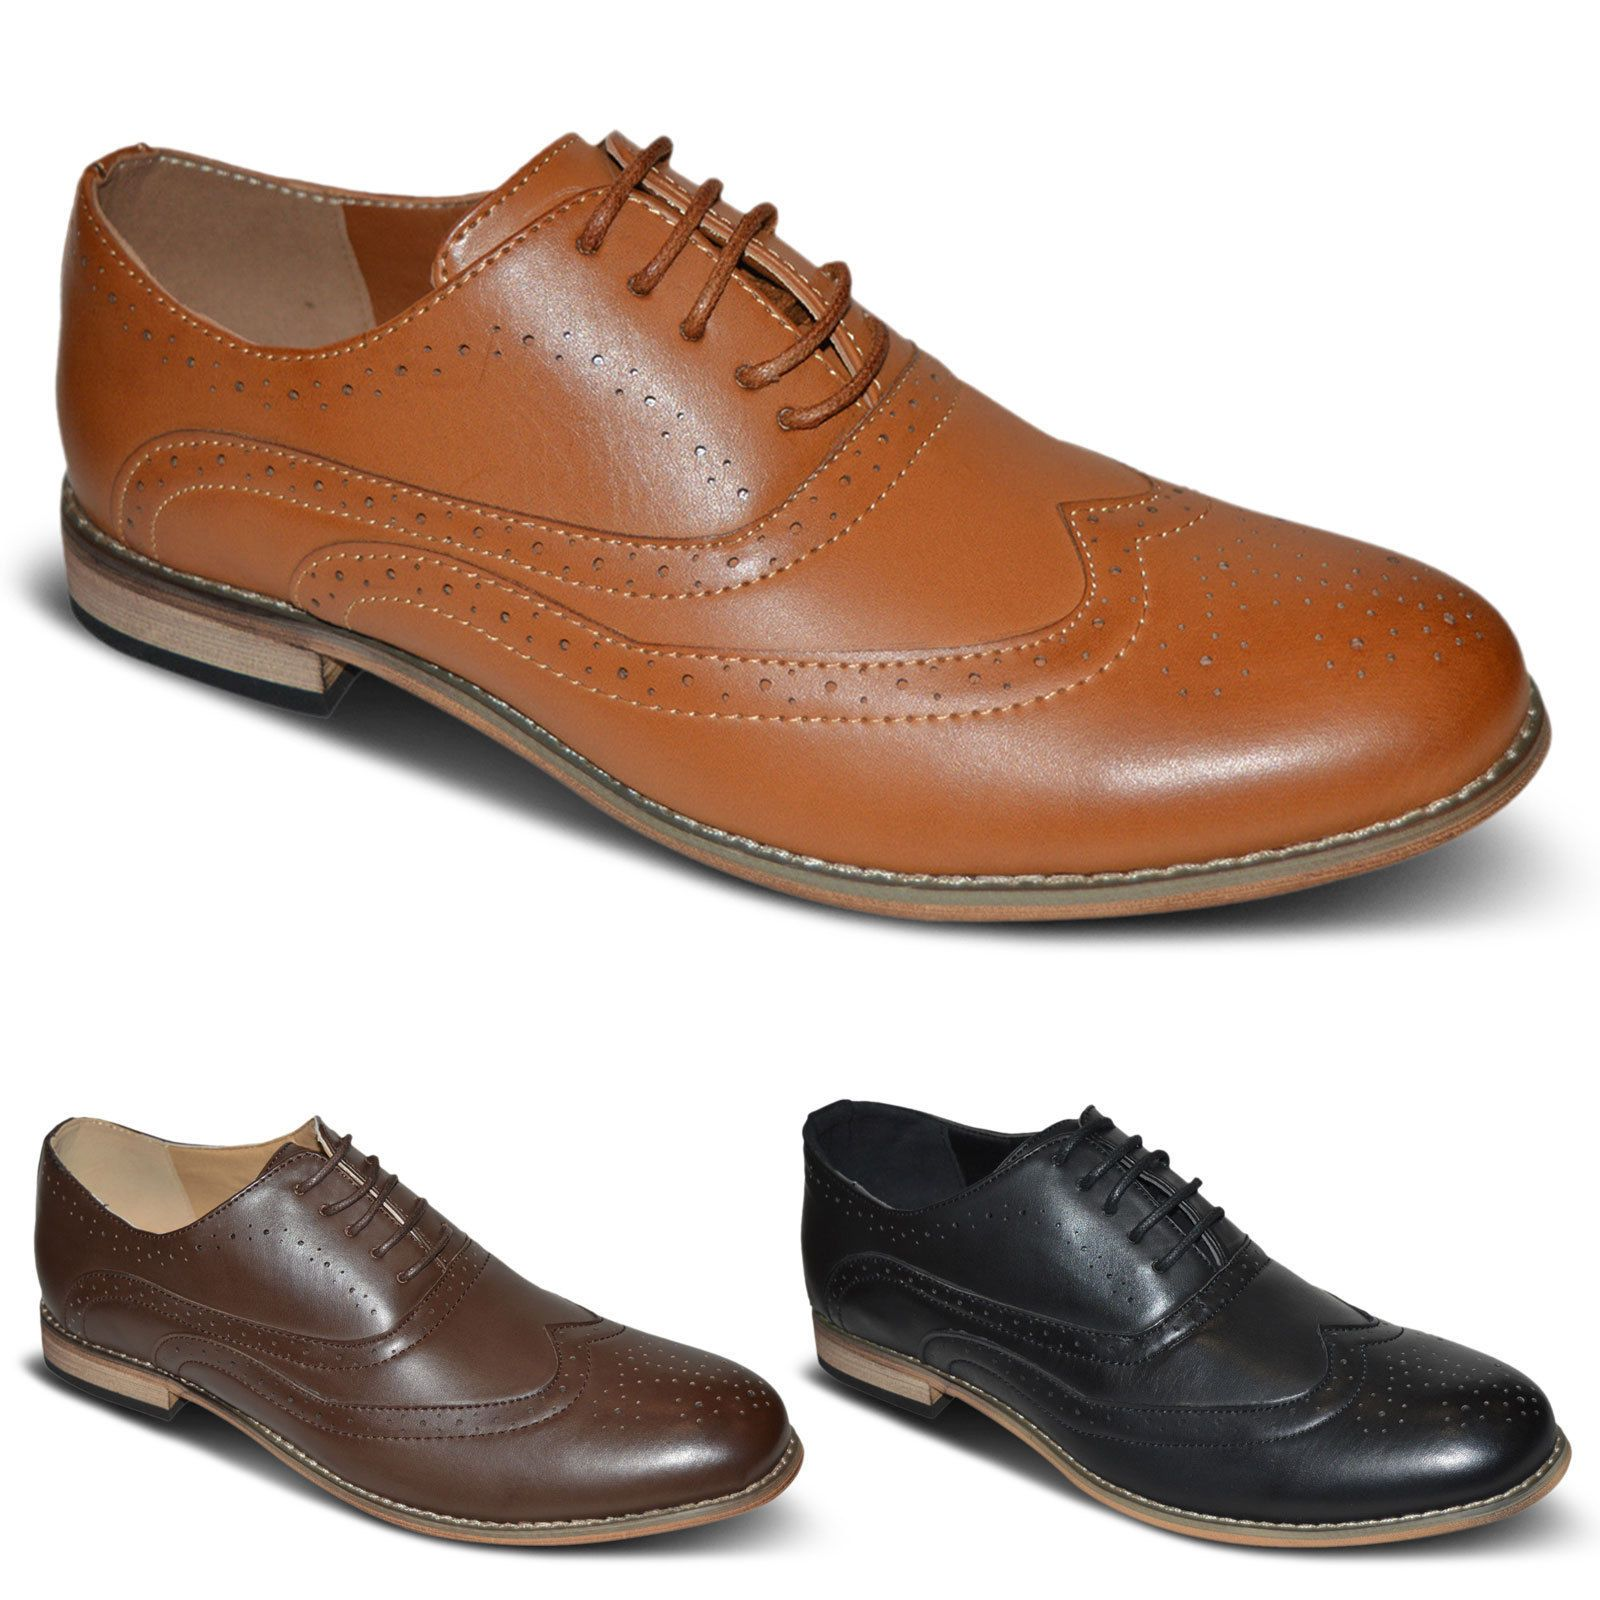 BRAND NEW MEN'S STUNNING WEDDING PARTY WORK OFFICE LACE UP SHOES UK SIZE 6-11